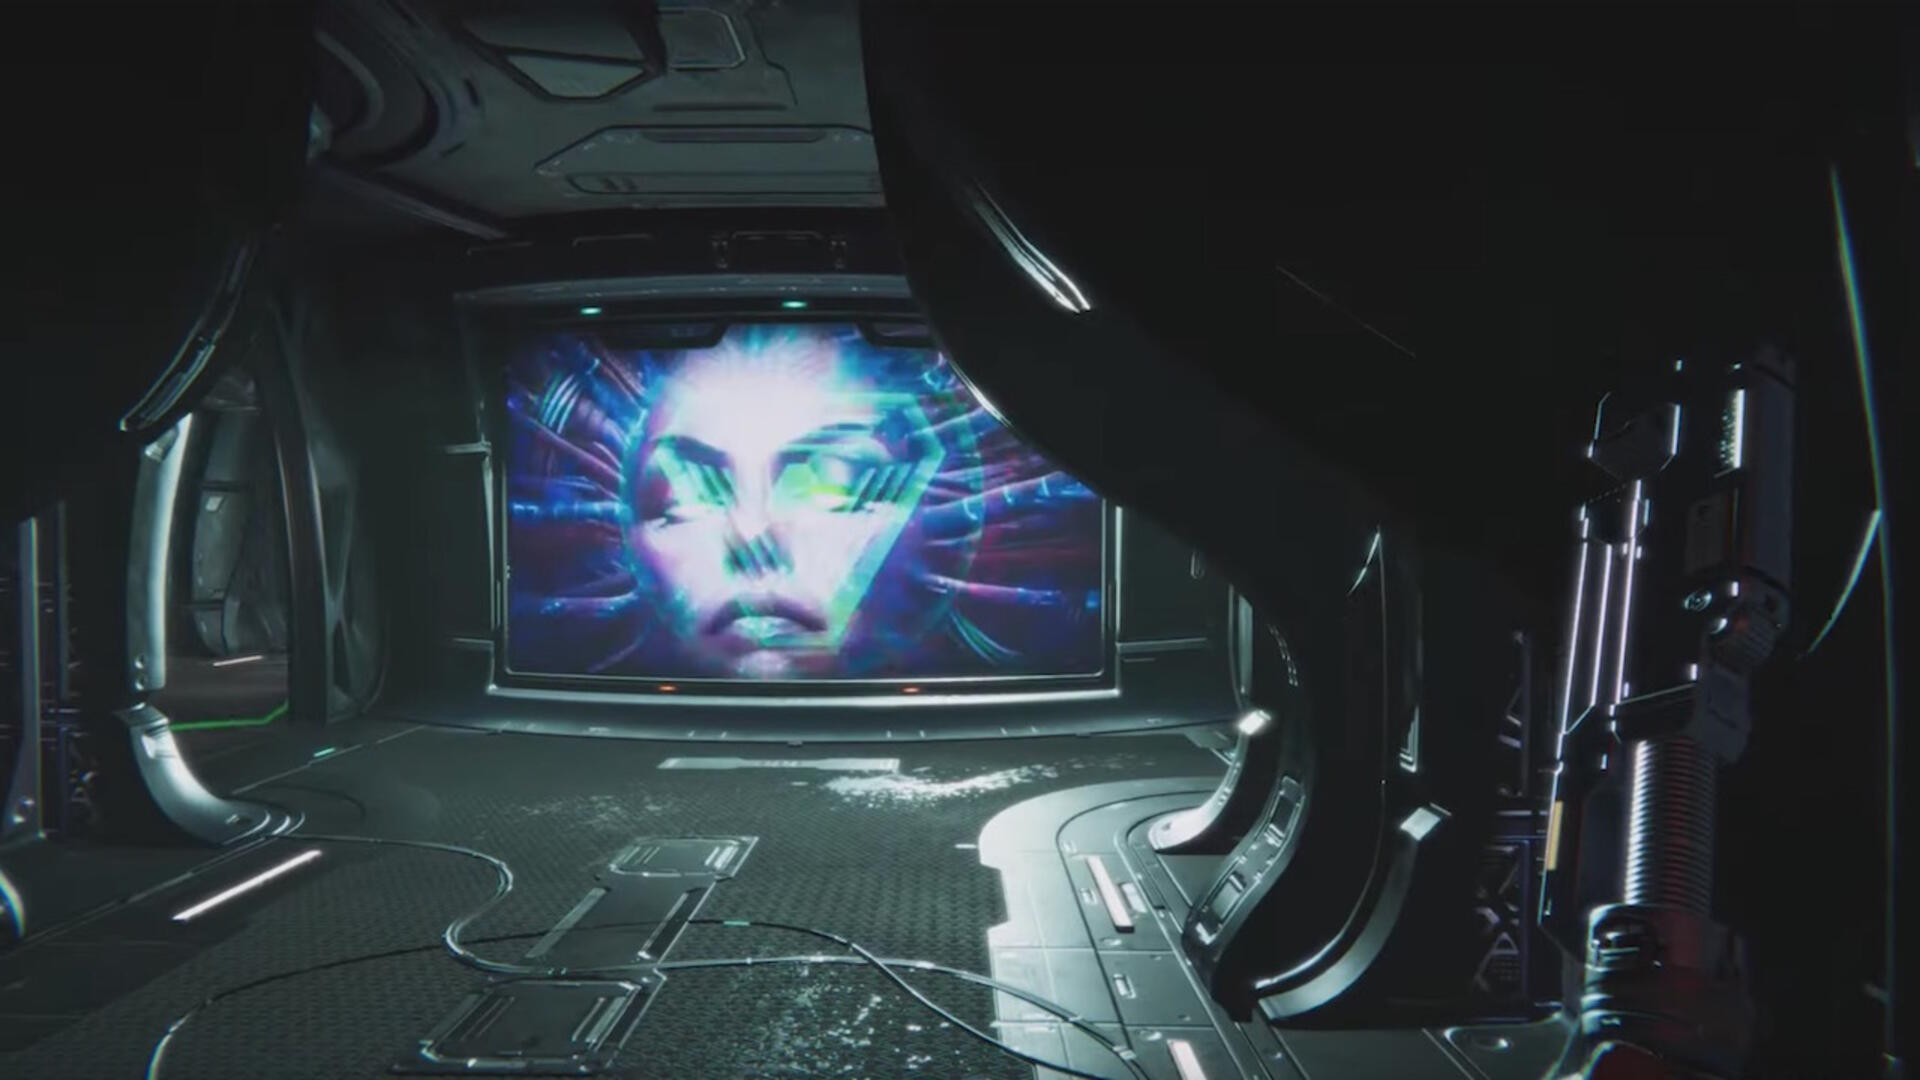 System Shock 3 Looks Appropriately Horrifying in This Pre-Alpha Teaser